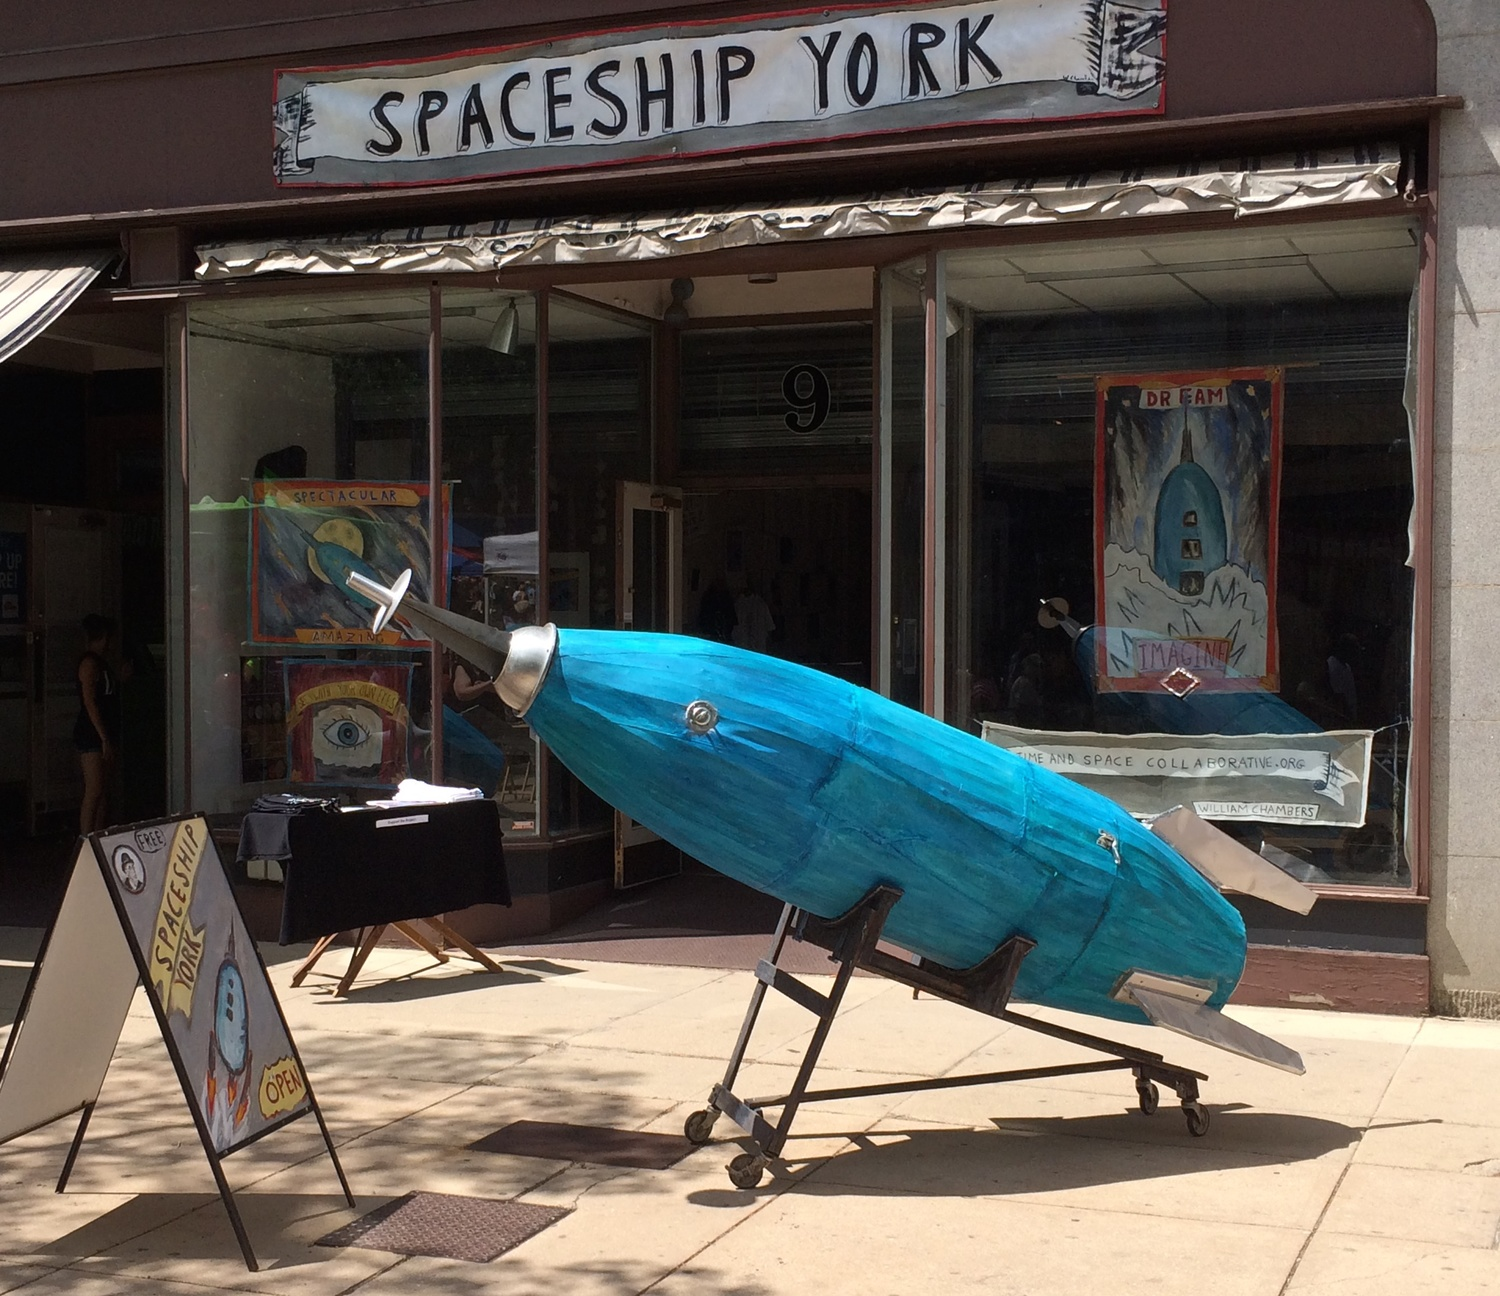 William Chambers,  Spaceship York , 2016. An interactive community installation where collected dreams were sent to space, York, PA.  Photo courtesy of  the artist.